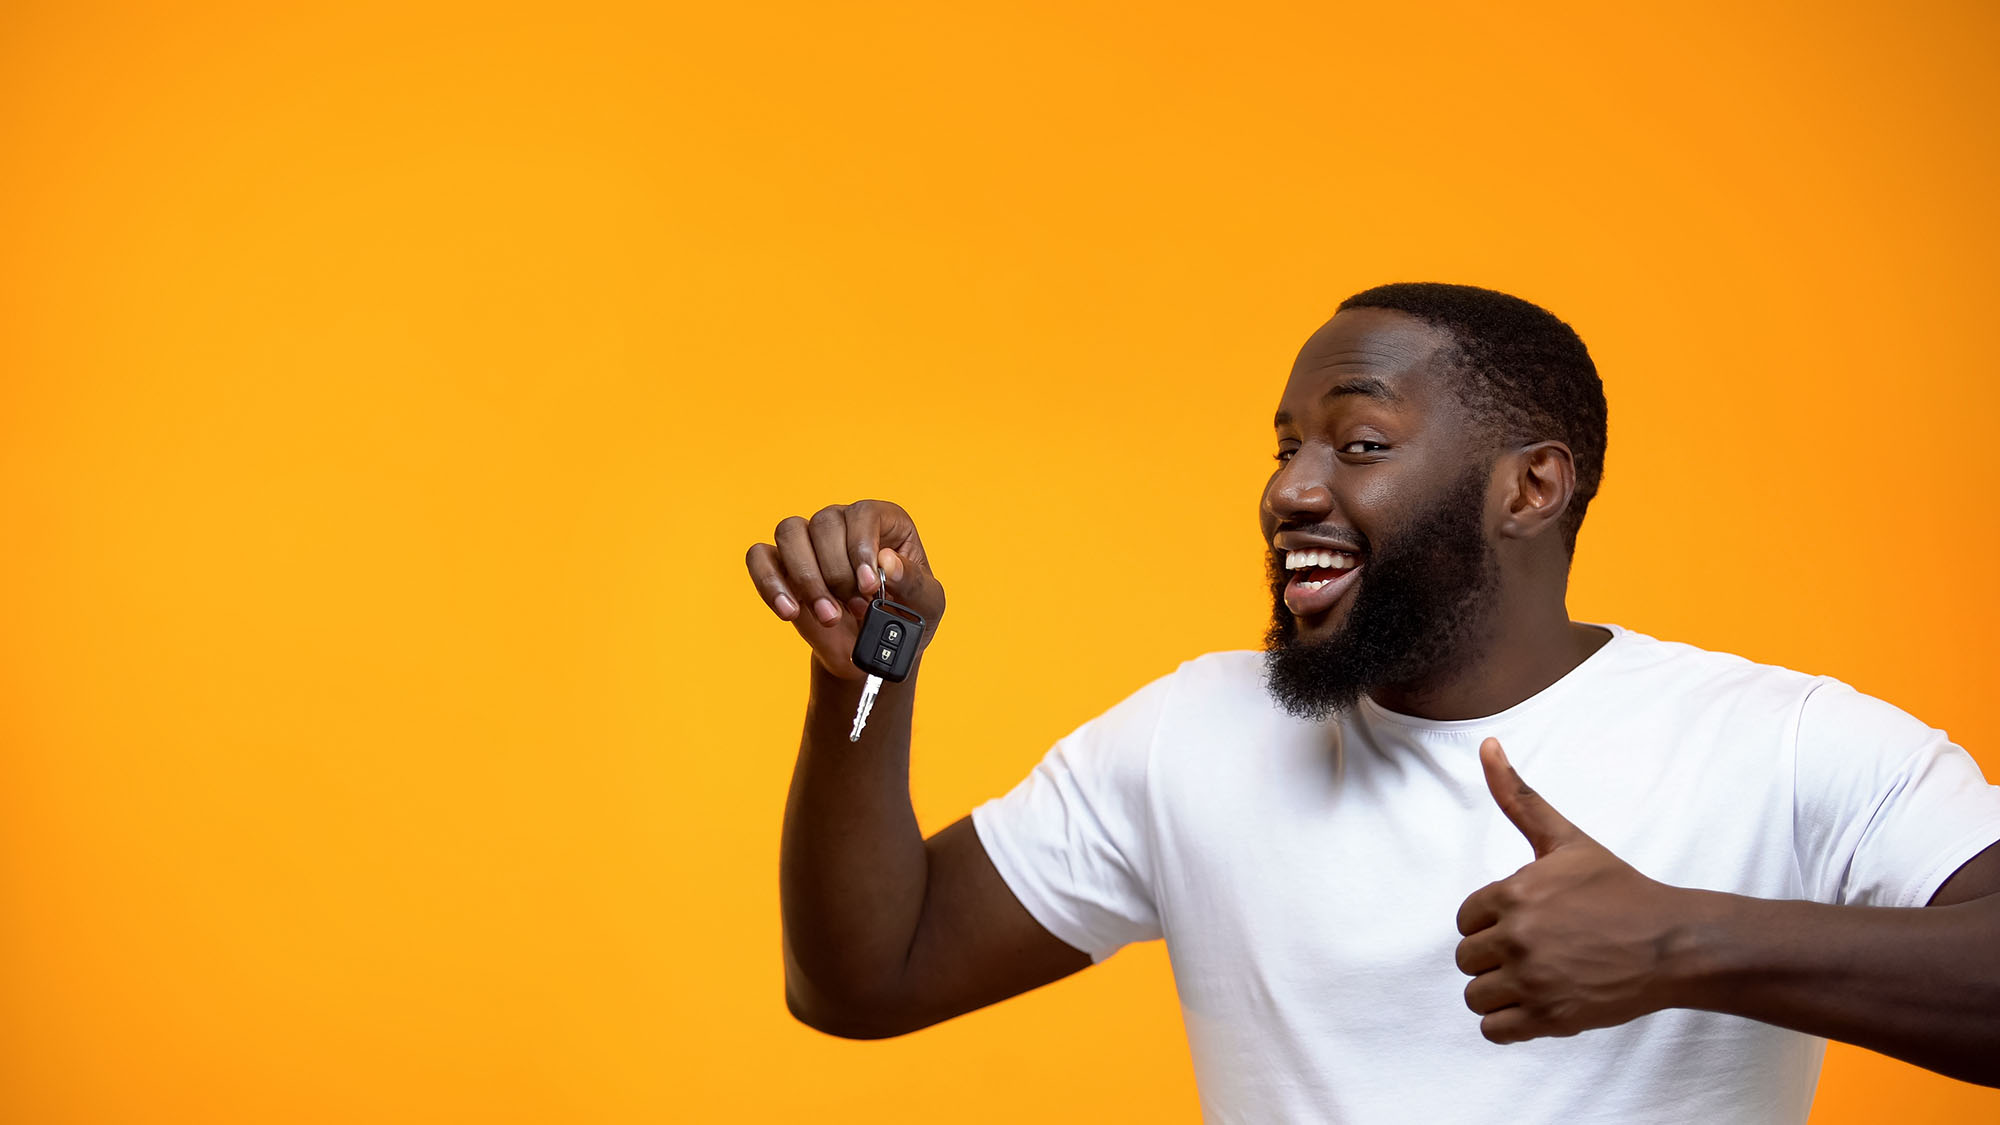 Excited Afro-American man holding car key and showing thumbs up, purchase